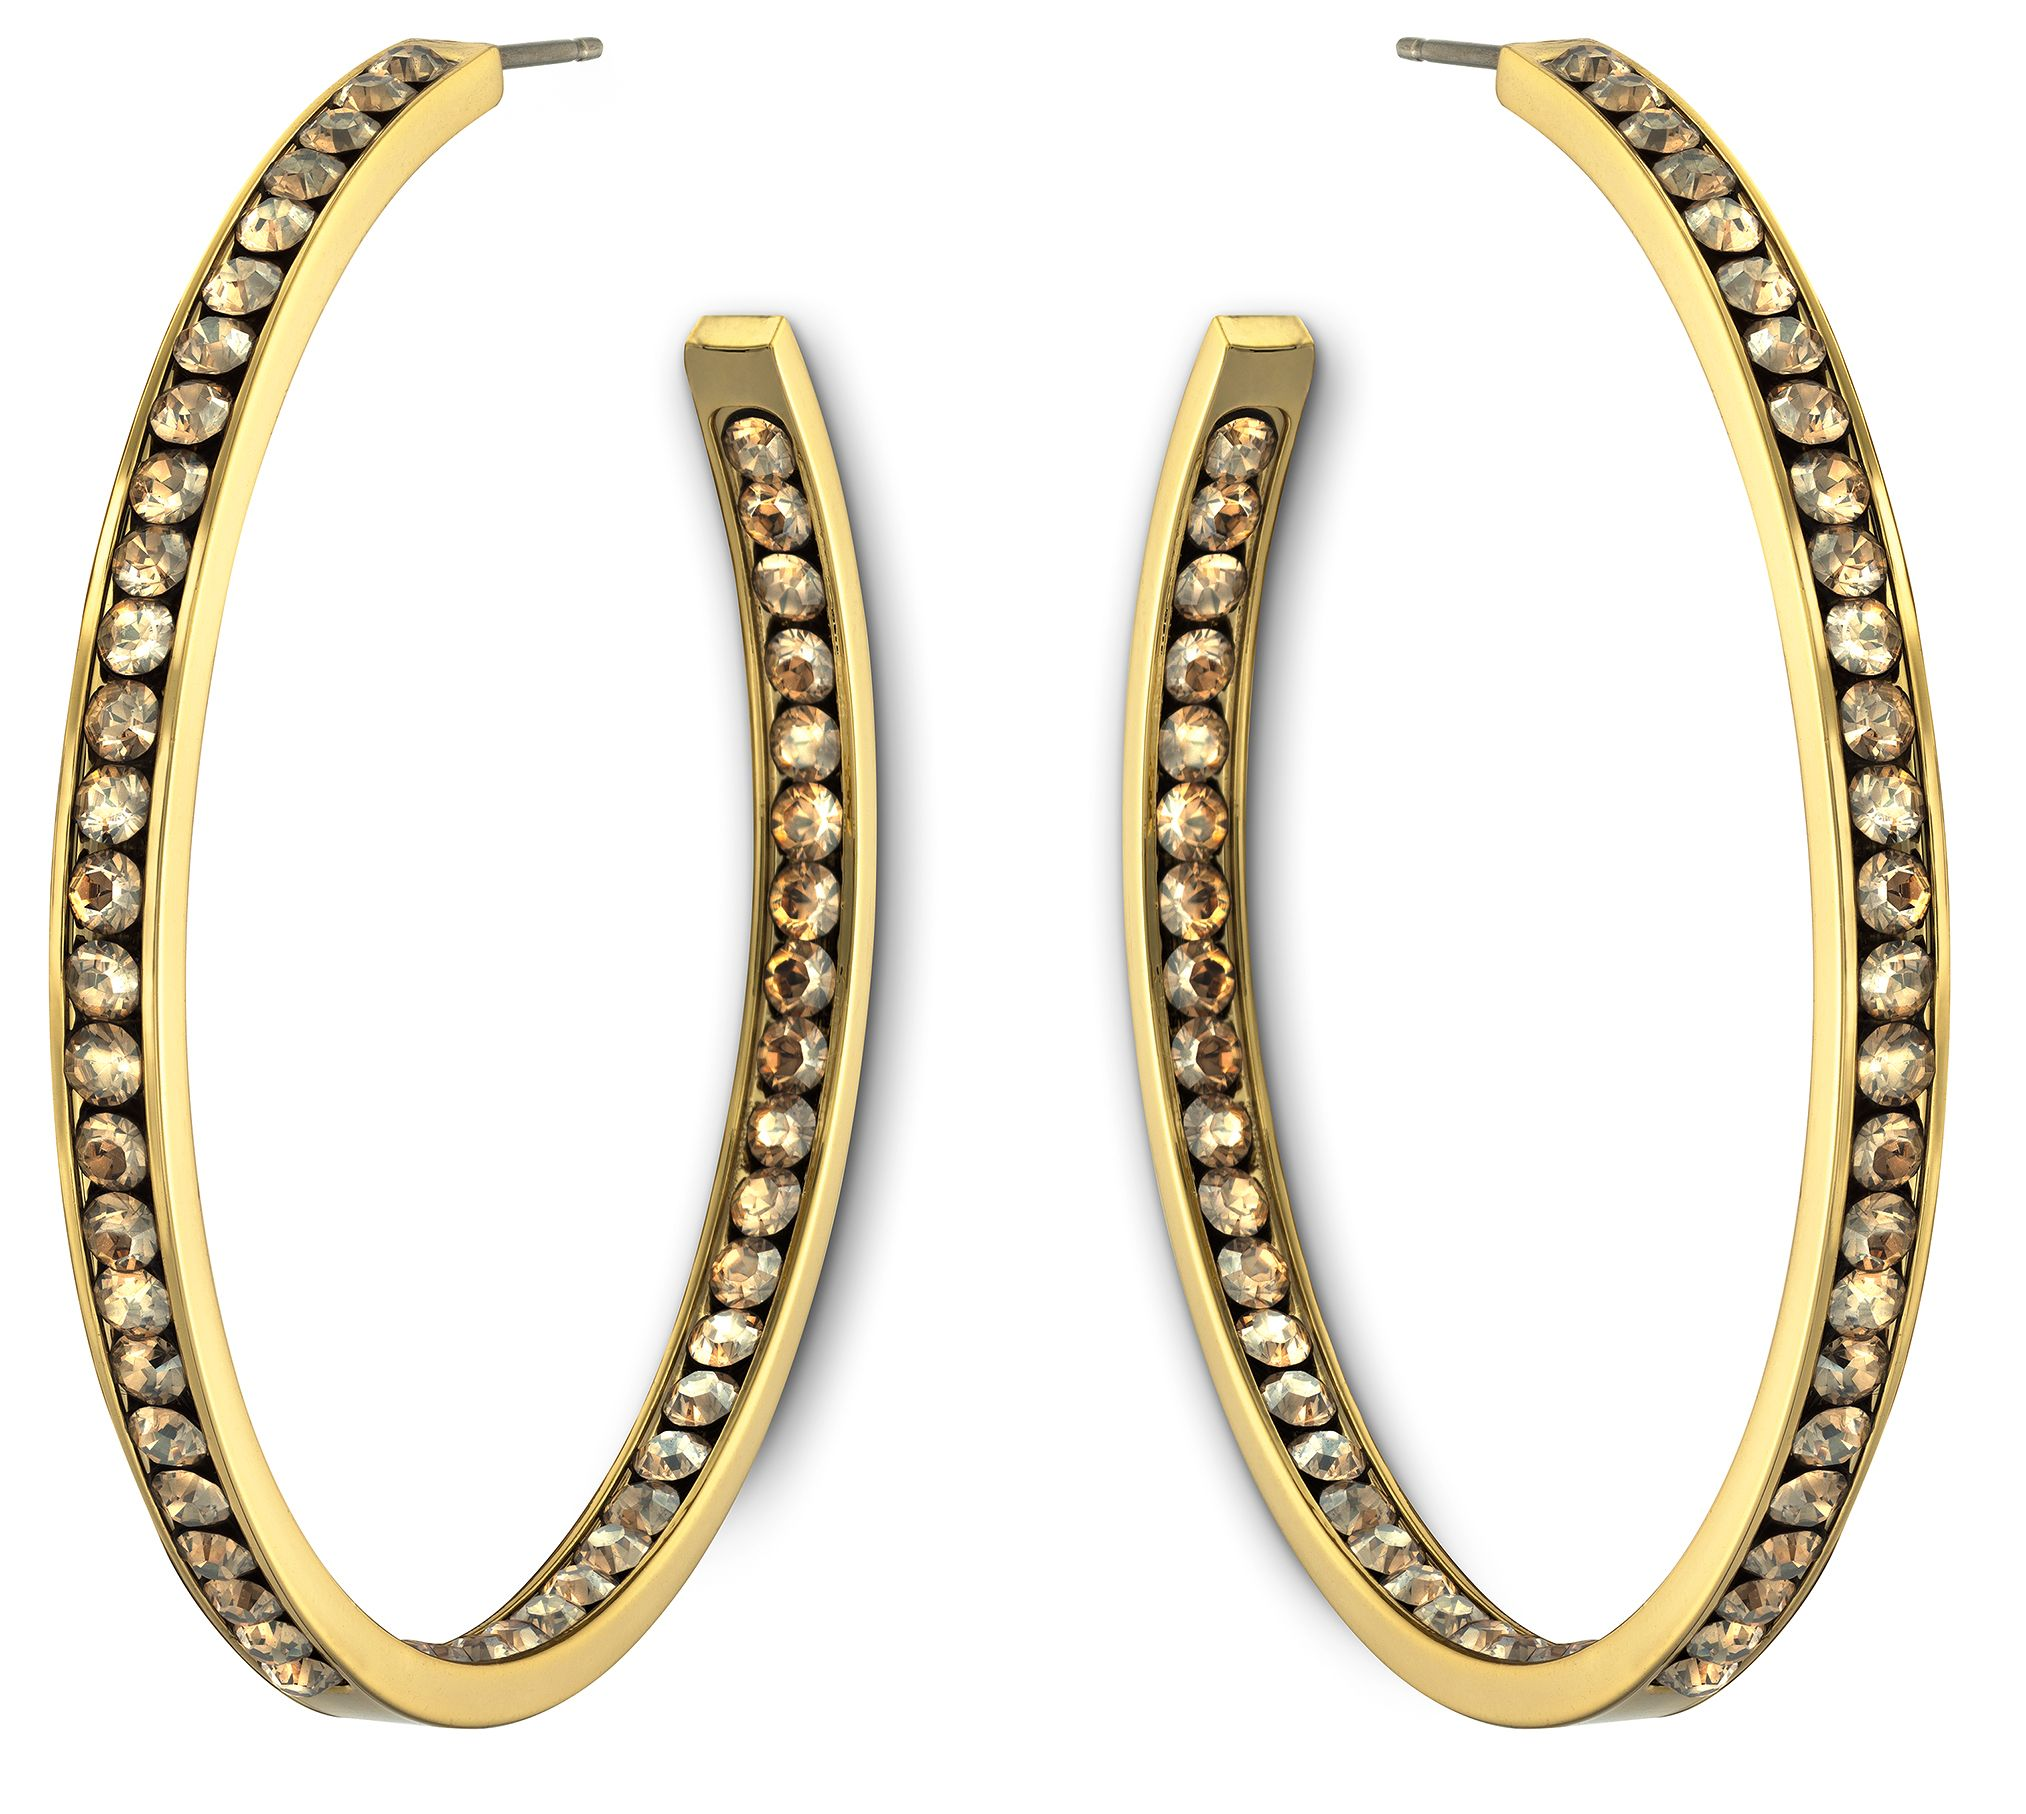 Kurate Jewellery Kurate Jewellery is a Importer & Wholesaler of Gold & Silver Jewellery. Our jewellery is sourced from all four corners of the globe to bring you the .